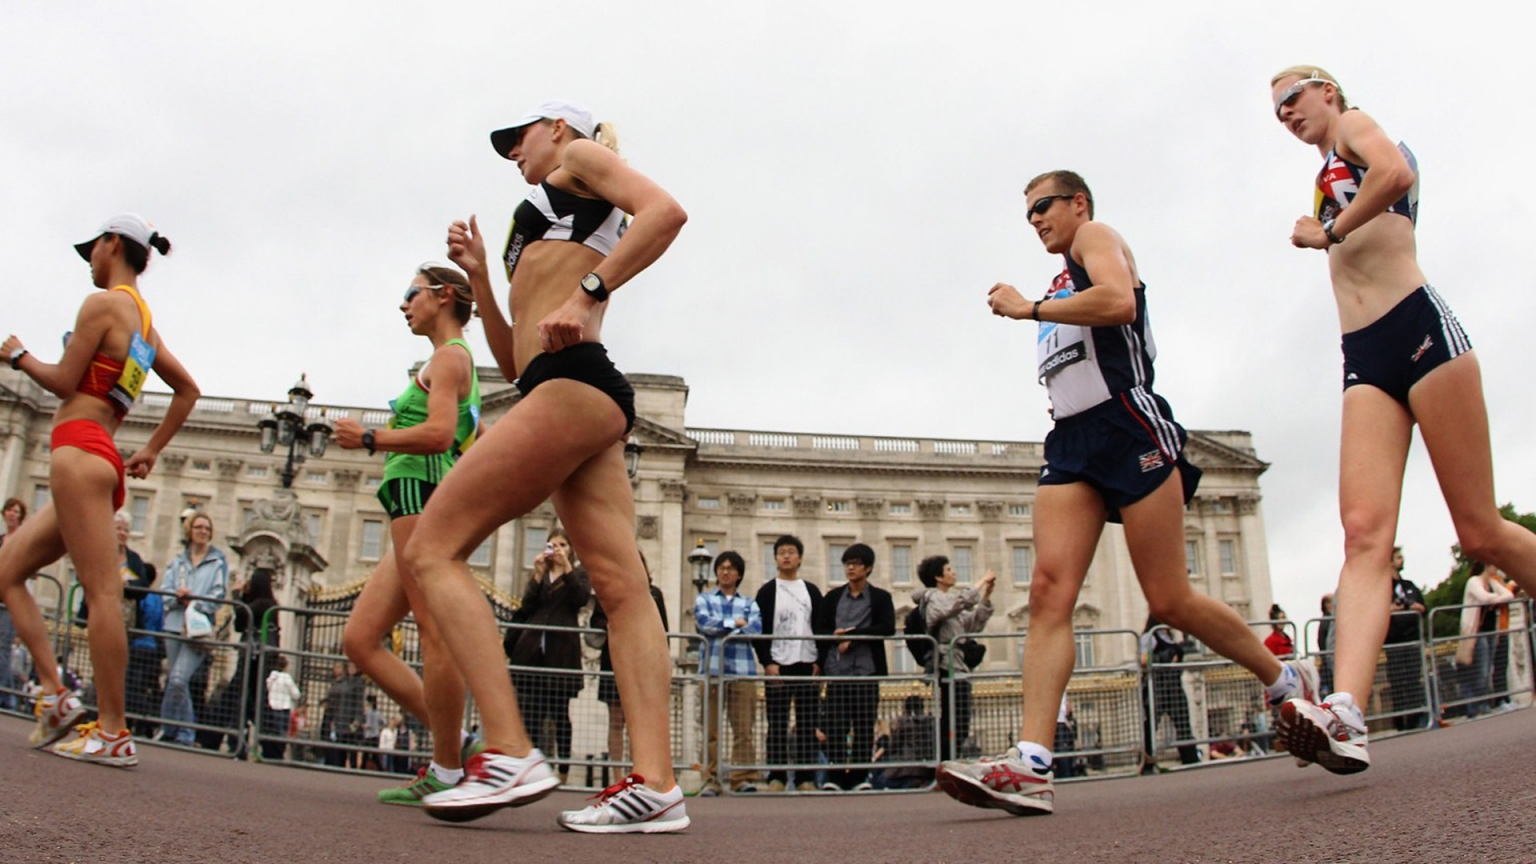 UKA 20km Race Walking Championships for 1536 x 864 HDTV resolution